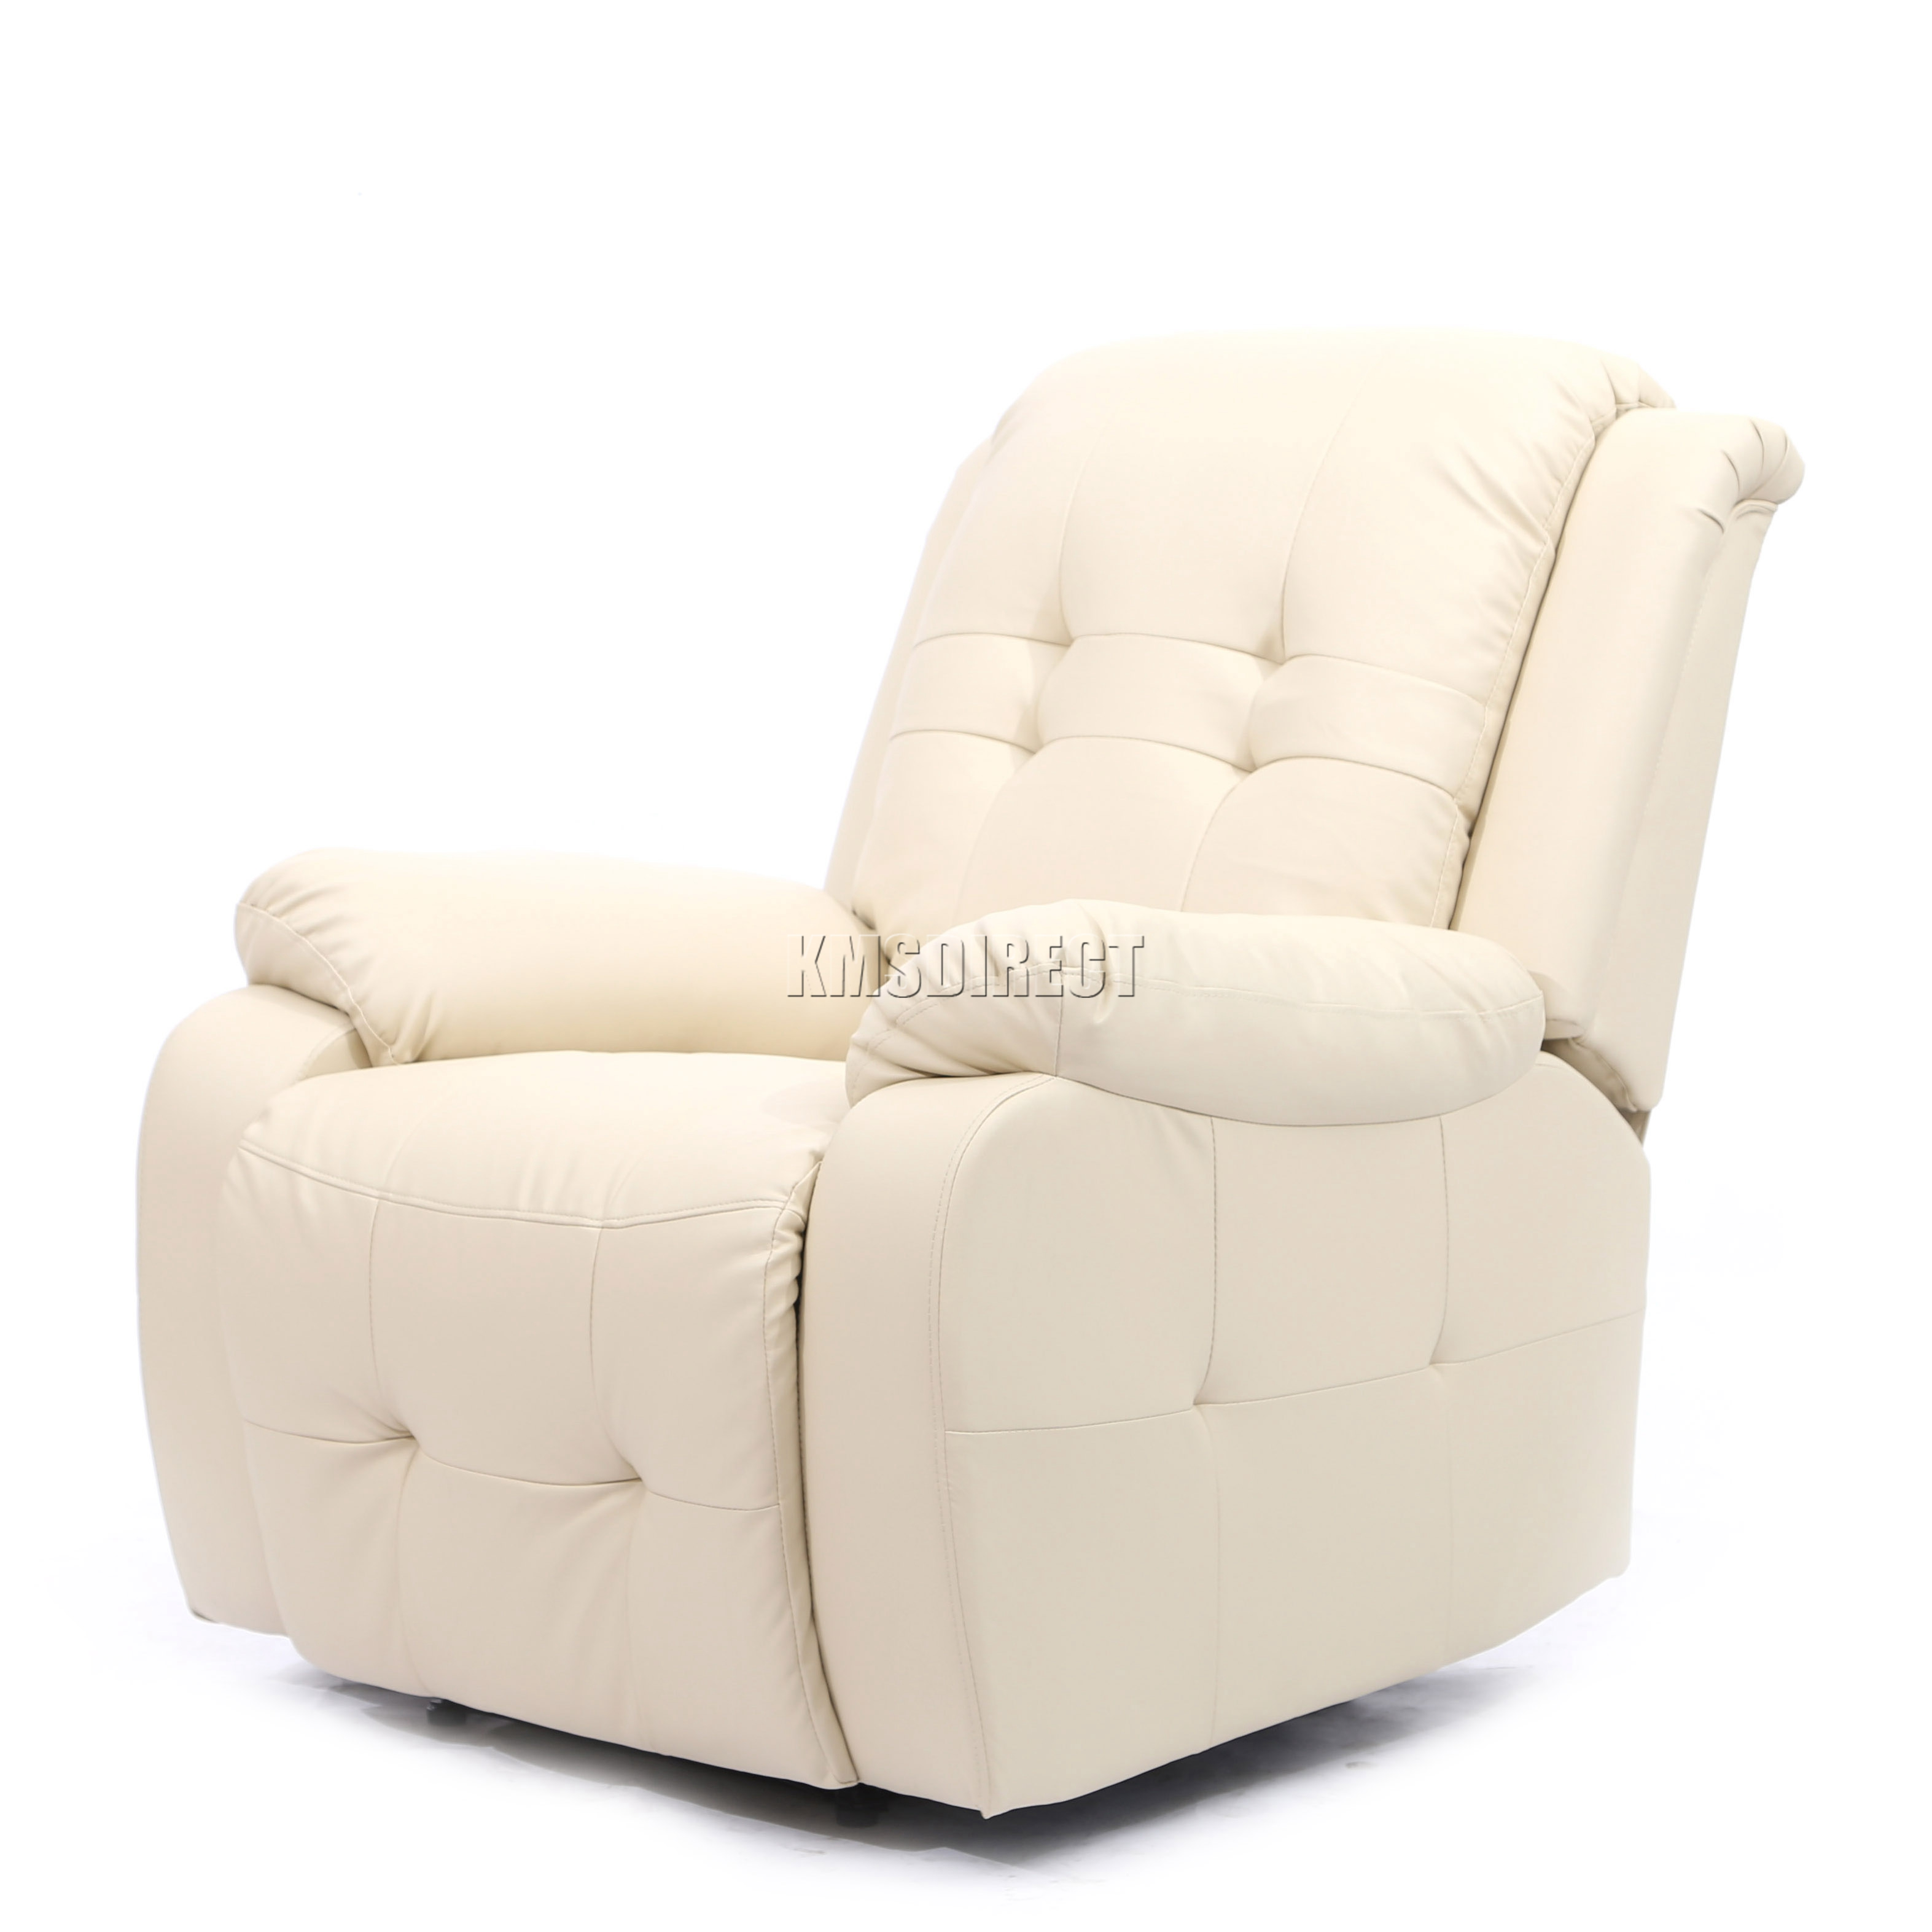 Foxhunter luxe 1 place cuir cinema fauteuil inclinable for Chaise inclinable